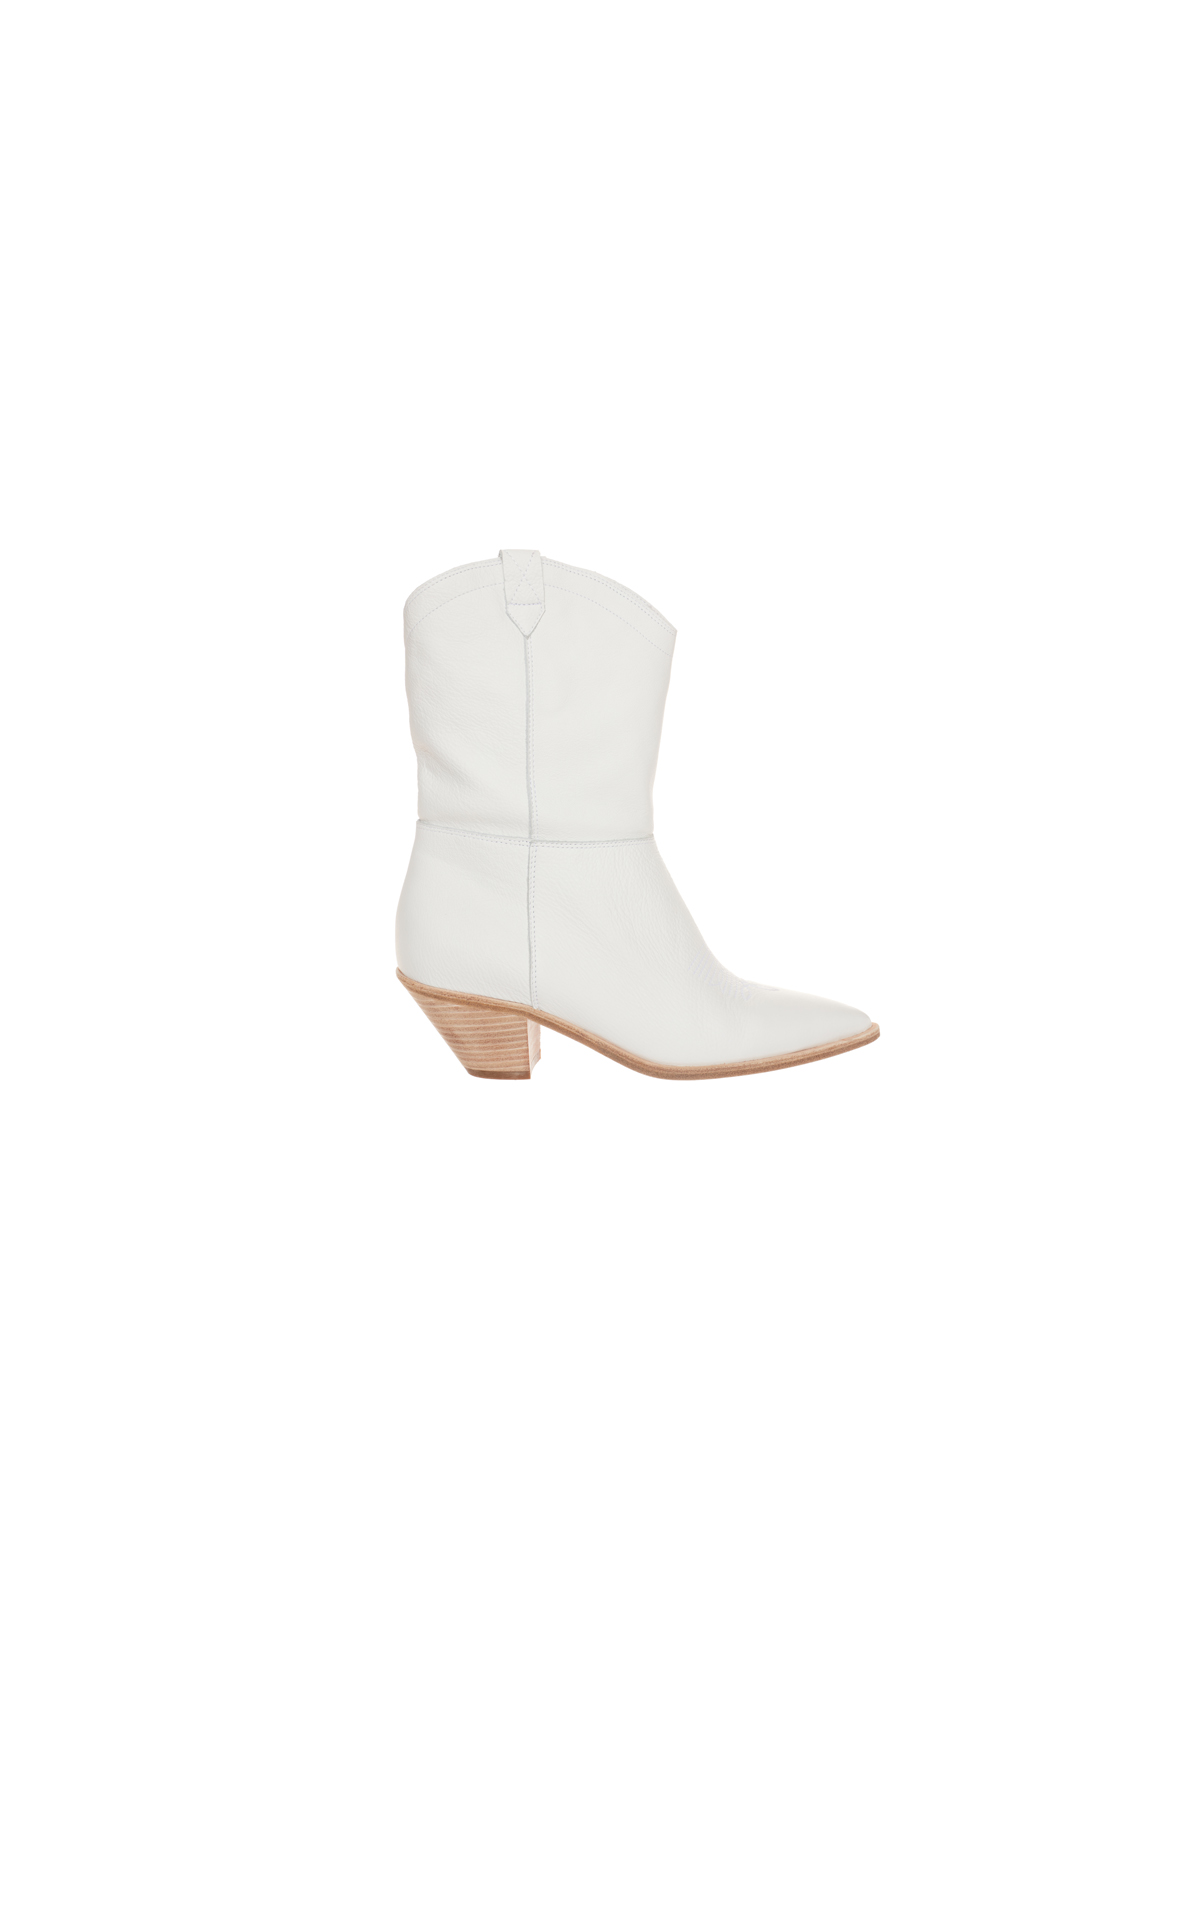 Bash Cheyen boots from Bicester Village